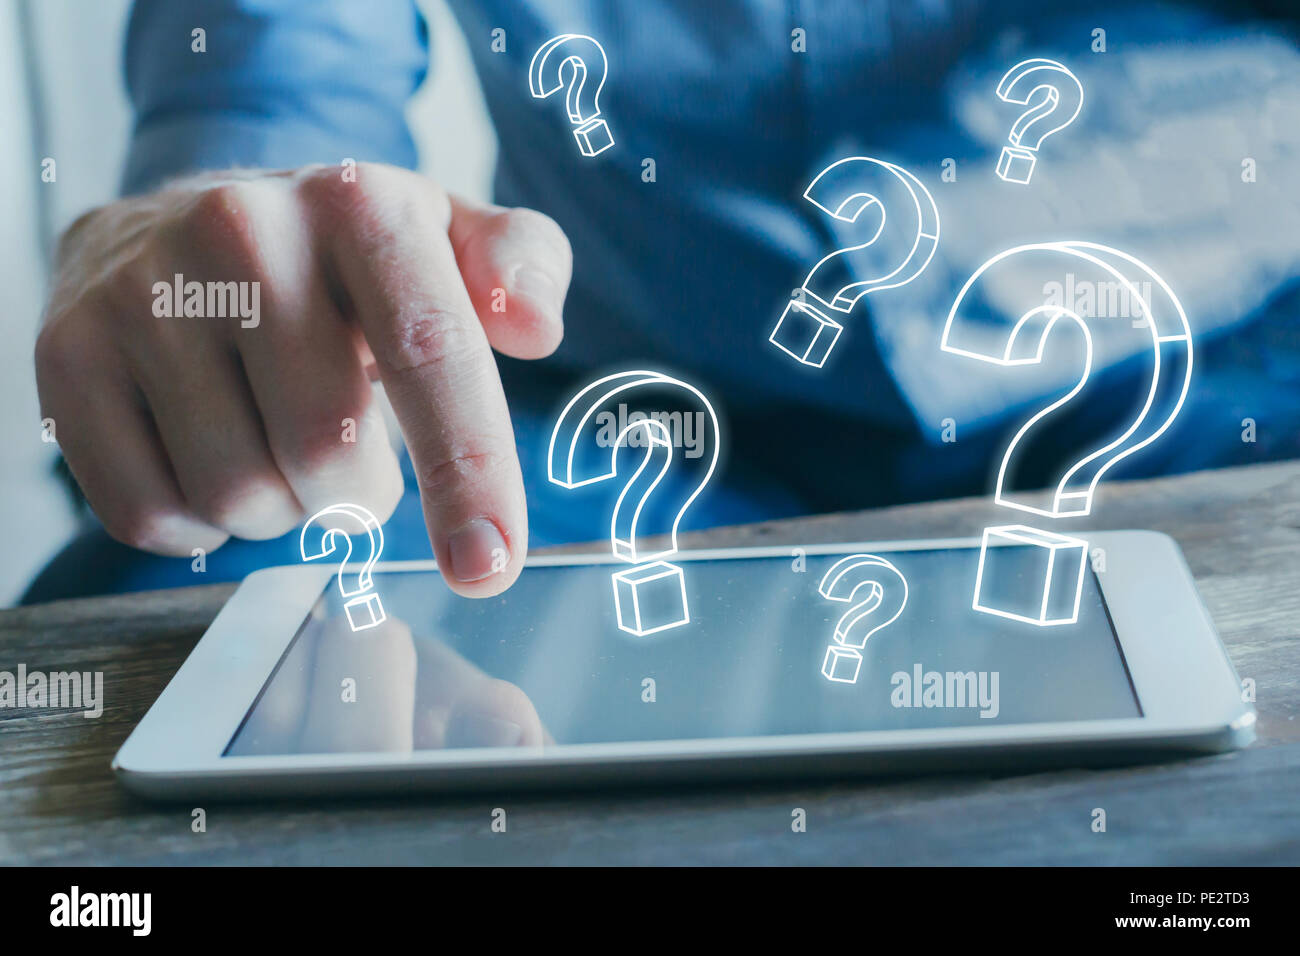 many quiestion marks from the screen of tablet computer, find answer online, FAQ concept, what where when how and why, search information on internet - Stock Image